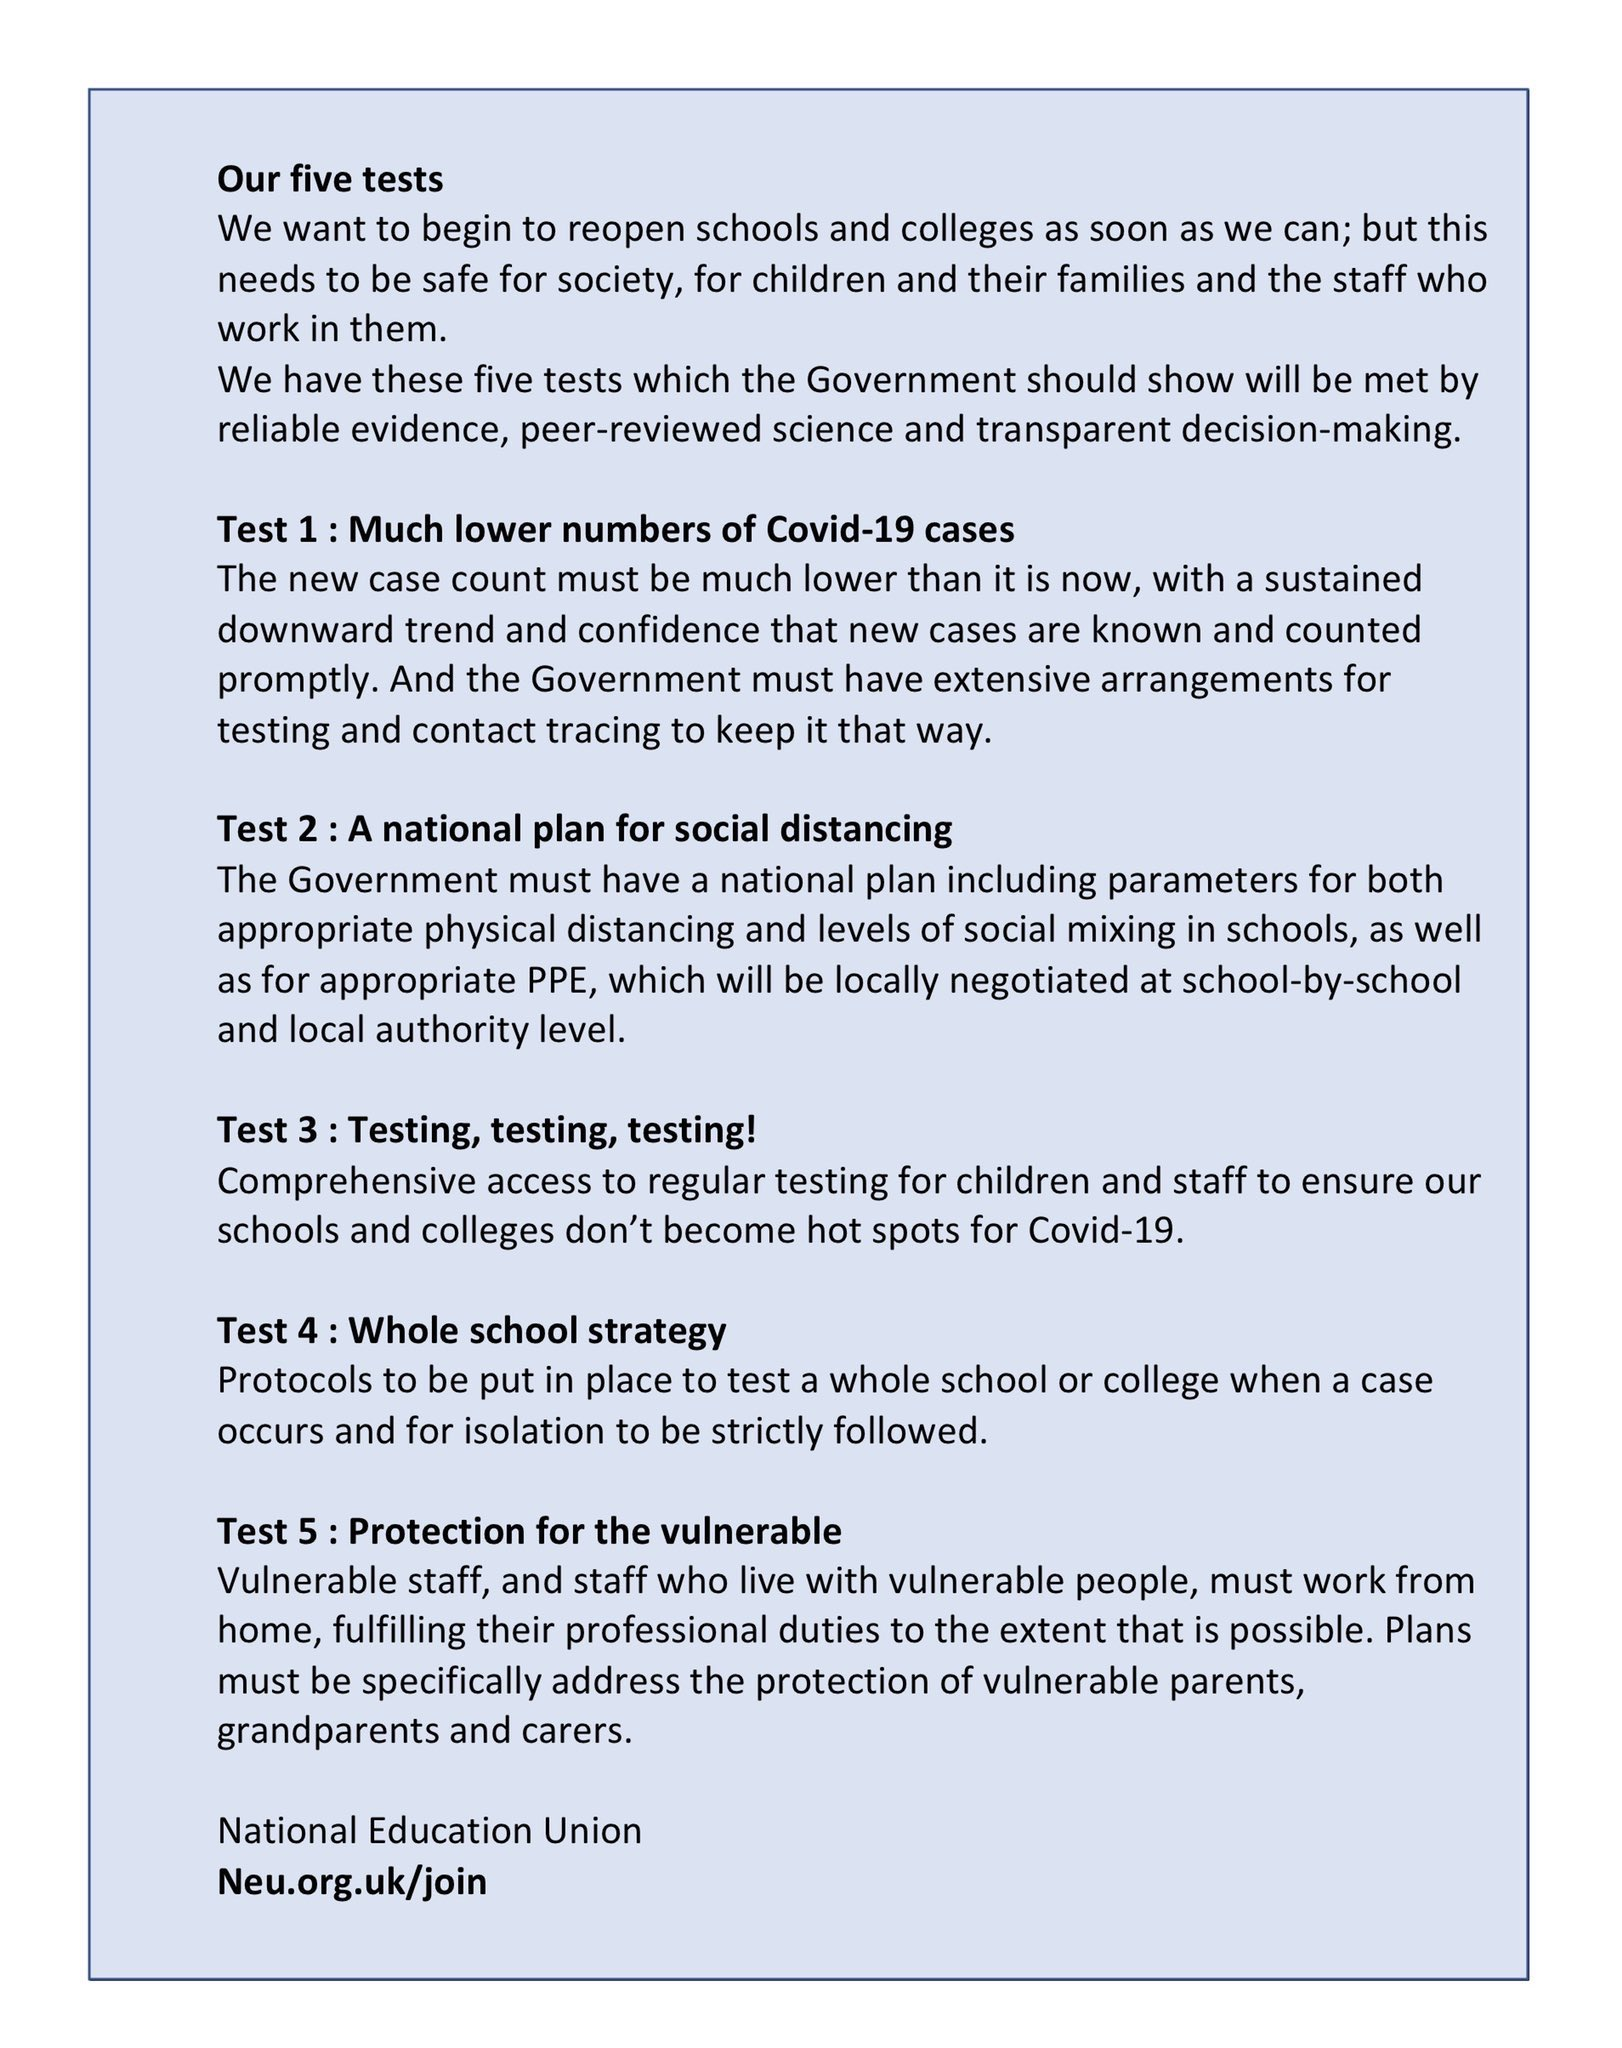 National Education Union On Twitter If You Want To Schools To Open When It S Safe Then Have A Look At Our Fivetests If You Agree With Them Then Please Tweet Them To